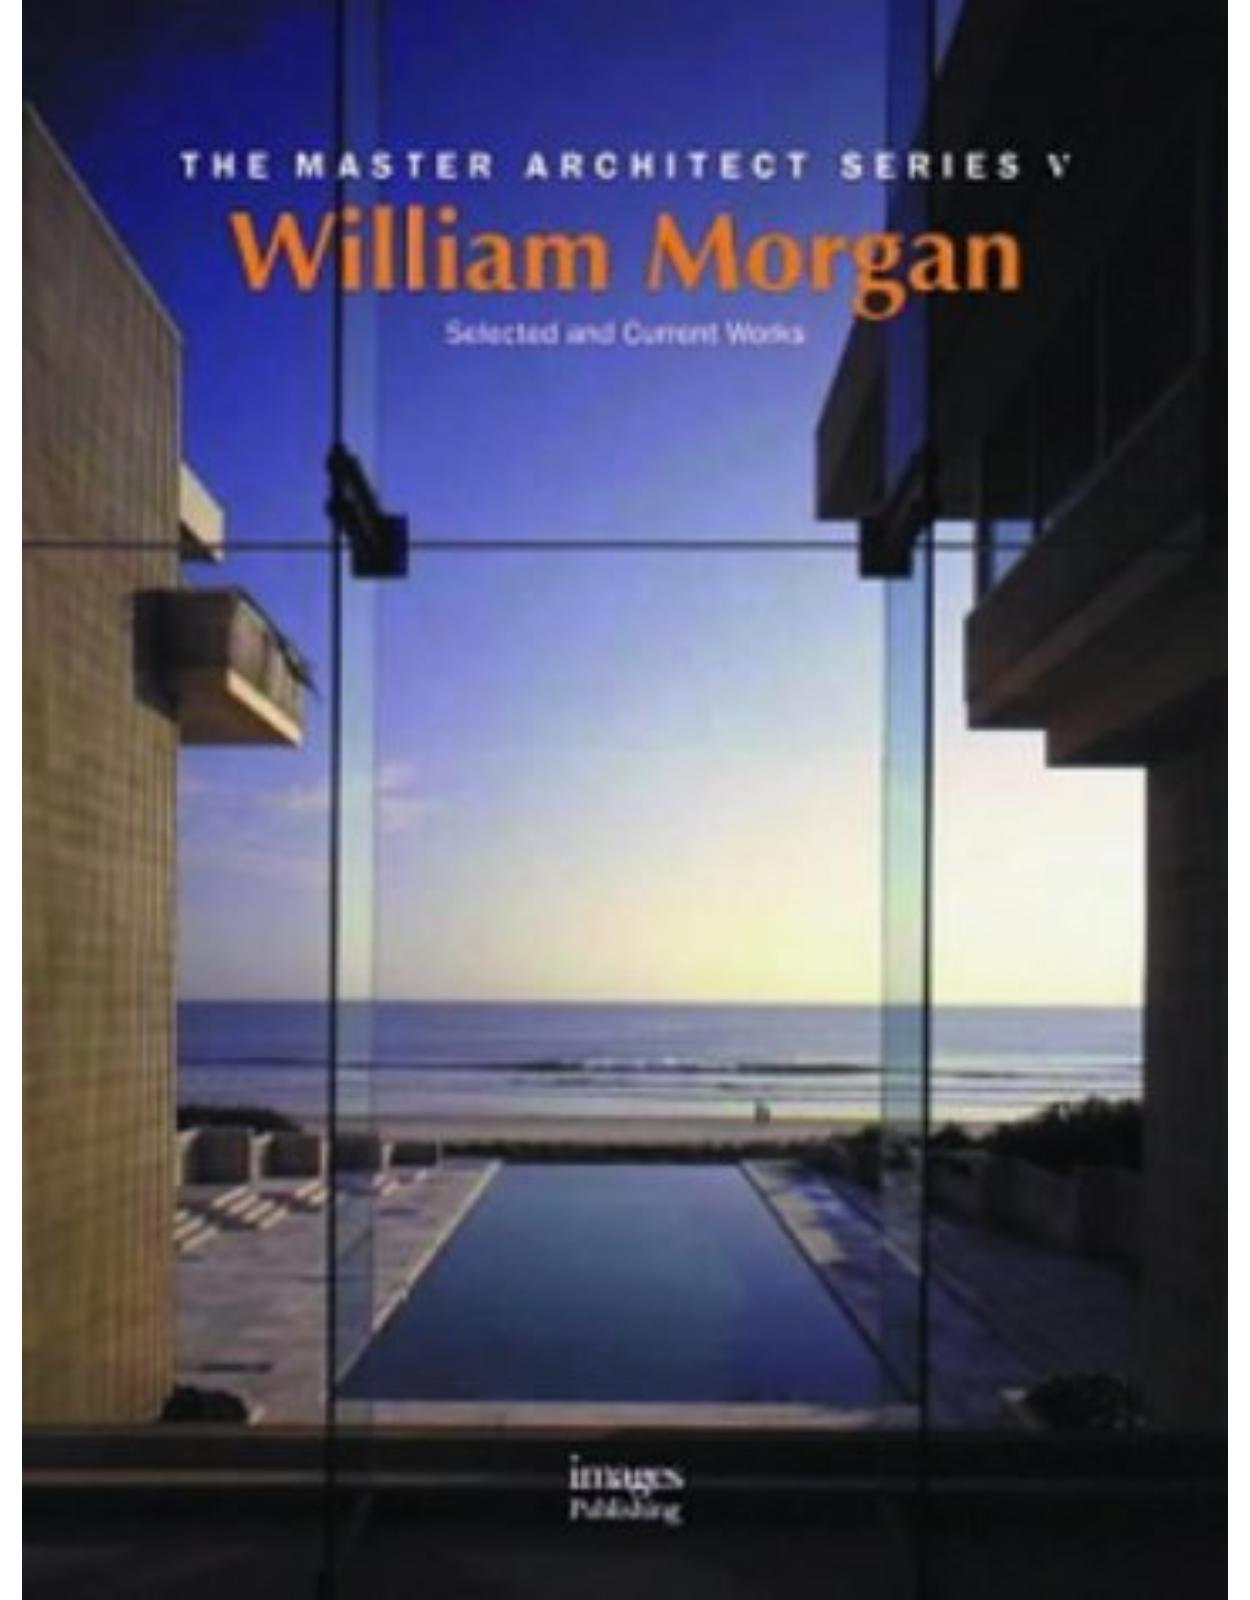 William Morgan Architects: Selected and Current Works (Master Architect Series VI)